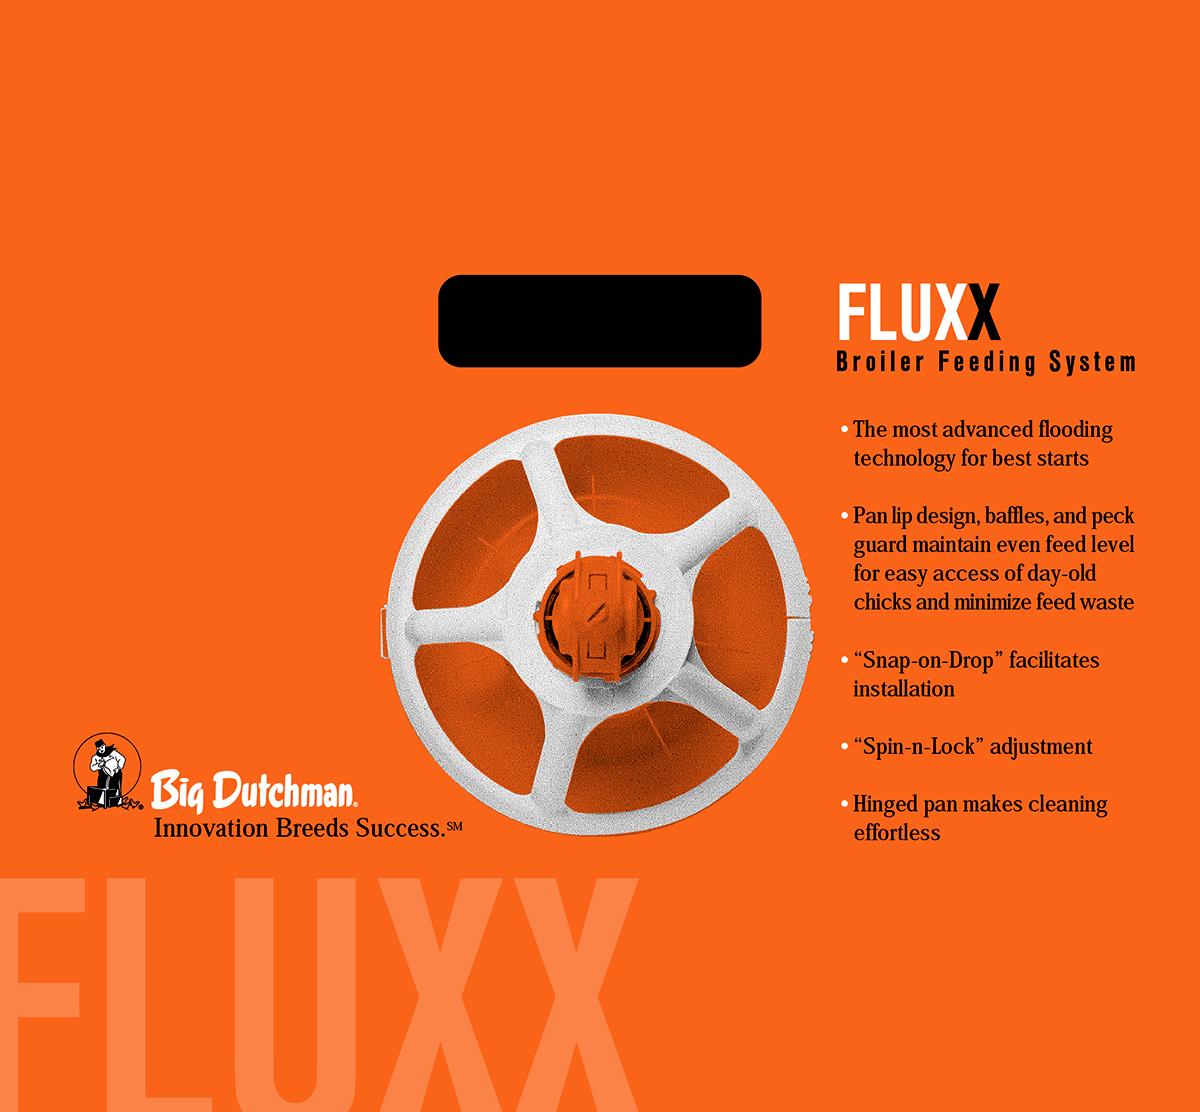 Big Dutchman Fluxx Packaging